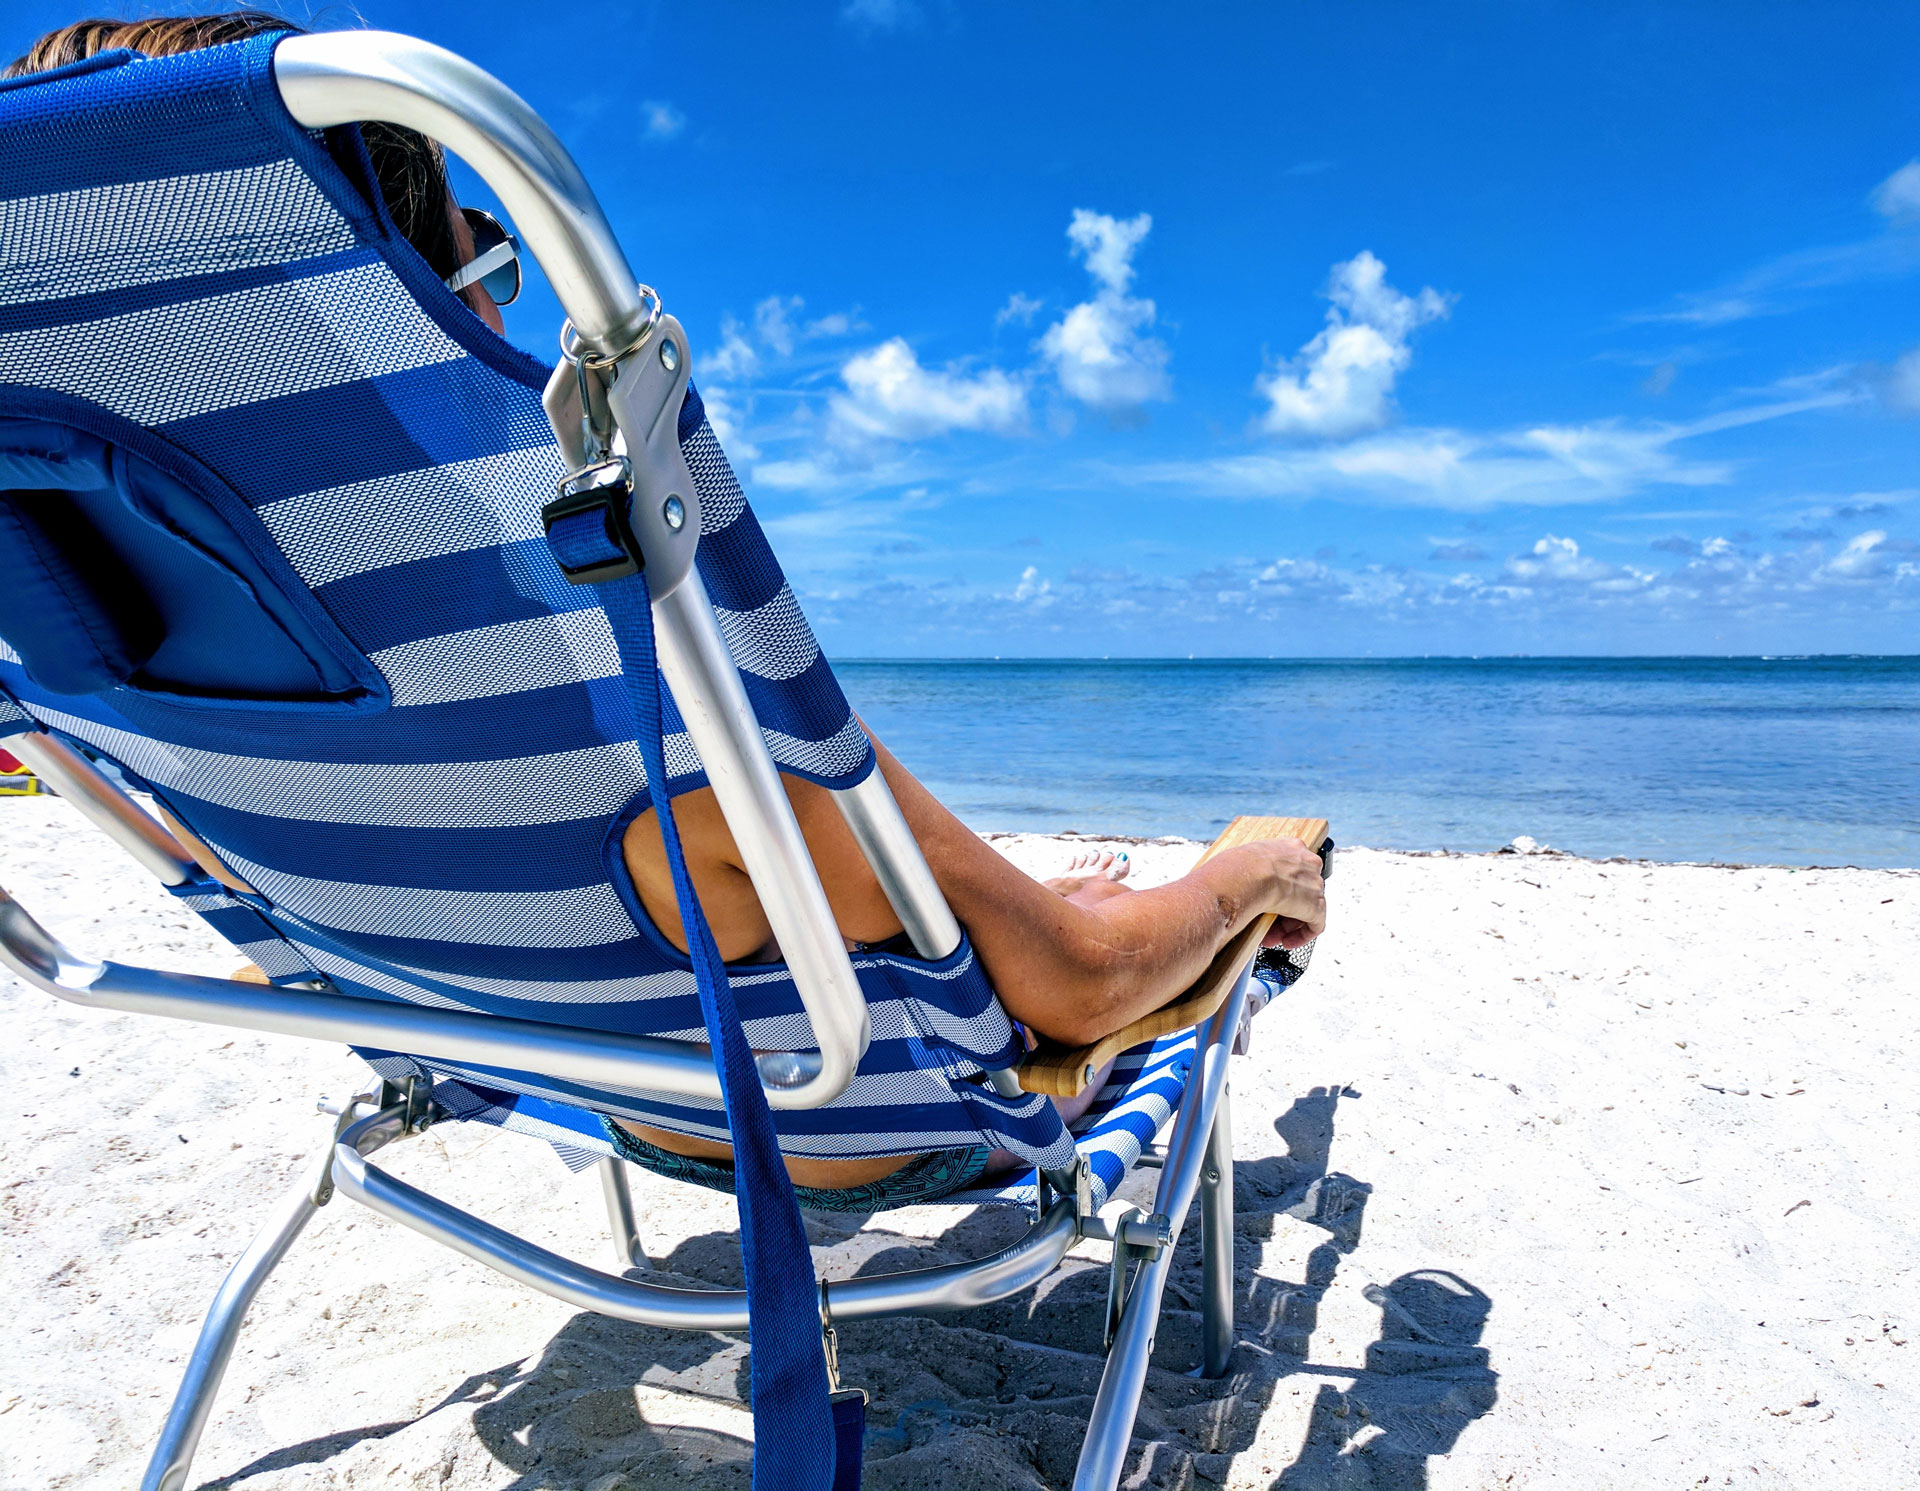 Get your Florida vacation going at Anna Maria Island's Cedar Cove Resorts